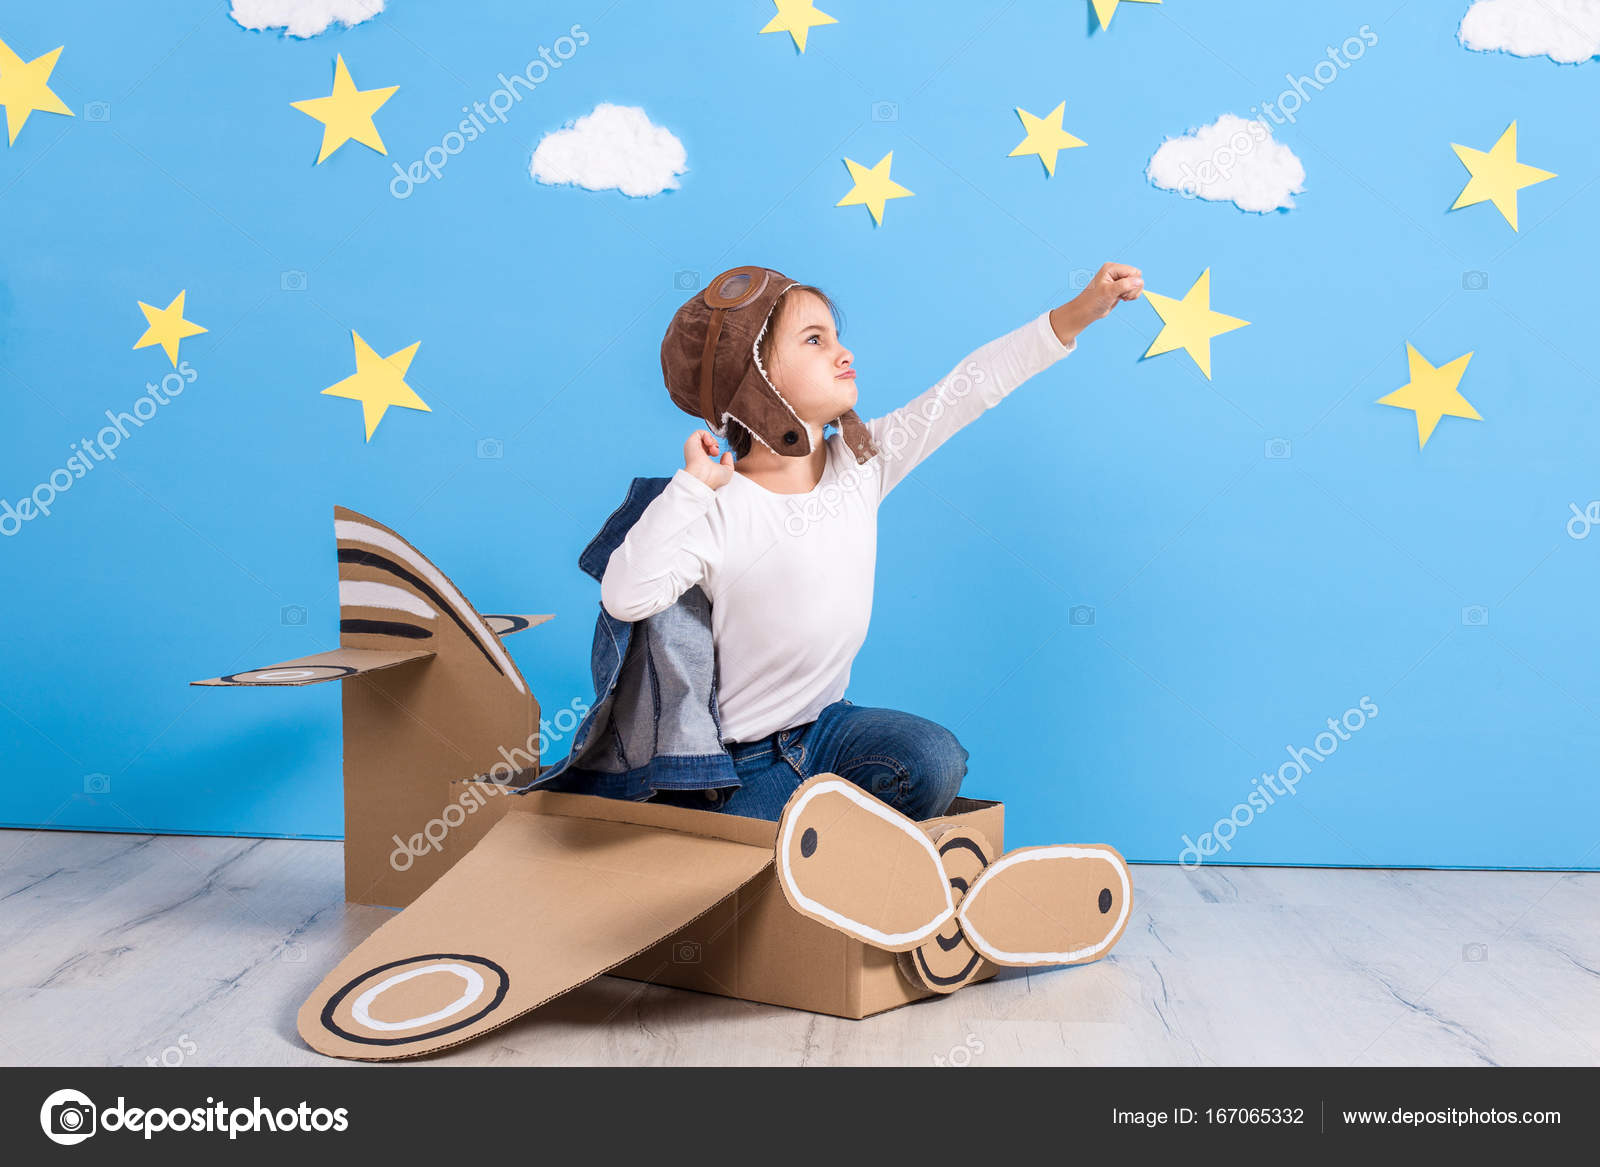 Little Child Girl In A Pilots Costume Is Playing And Dreaming Of Flying Over The Clouds